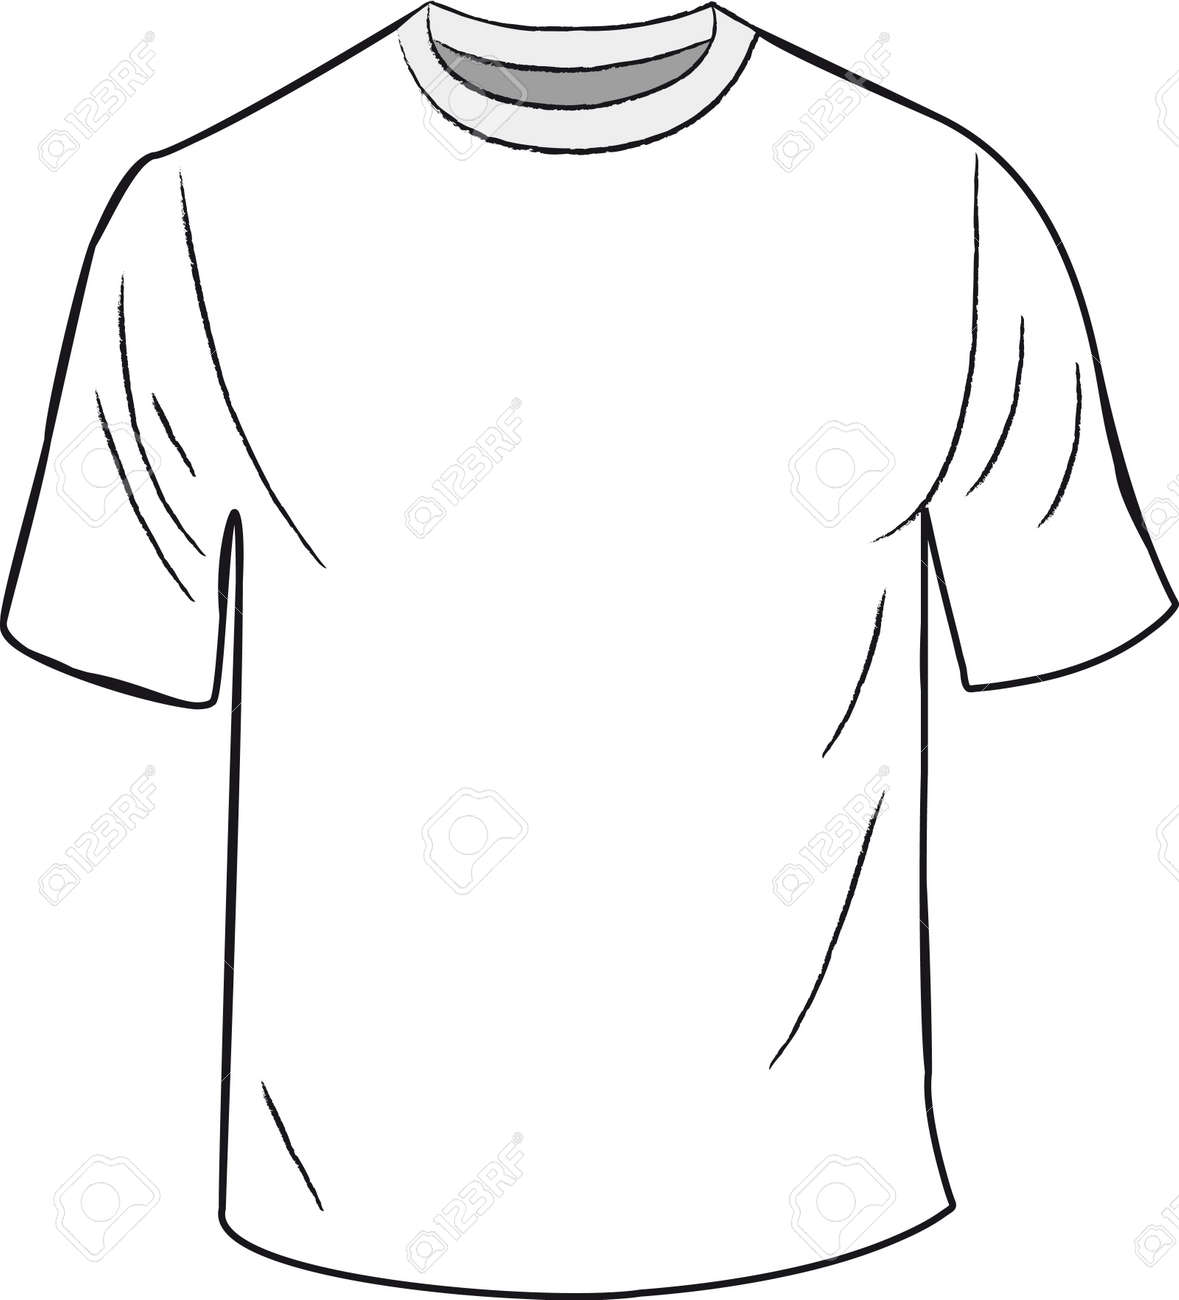 White Tshirt Design Template Royalty Free Cliparts Vectors And - T shirt artwork template